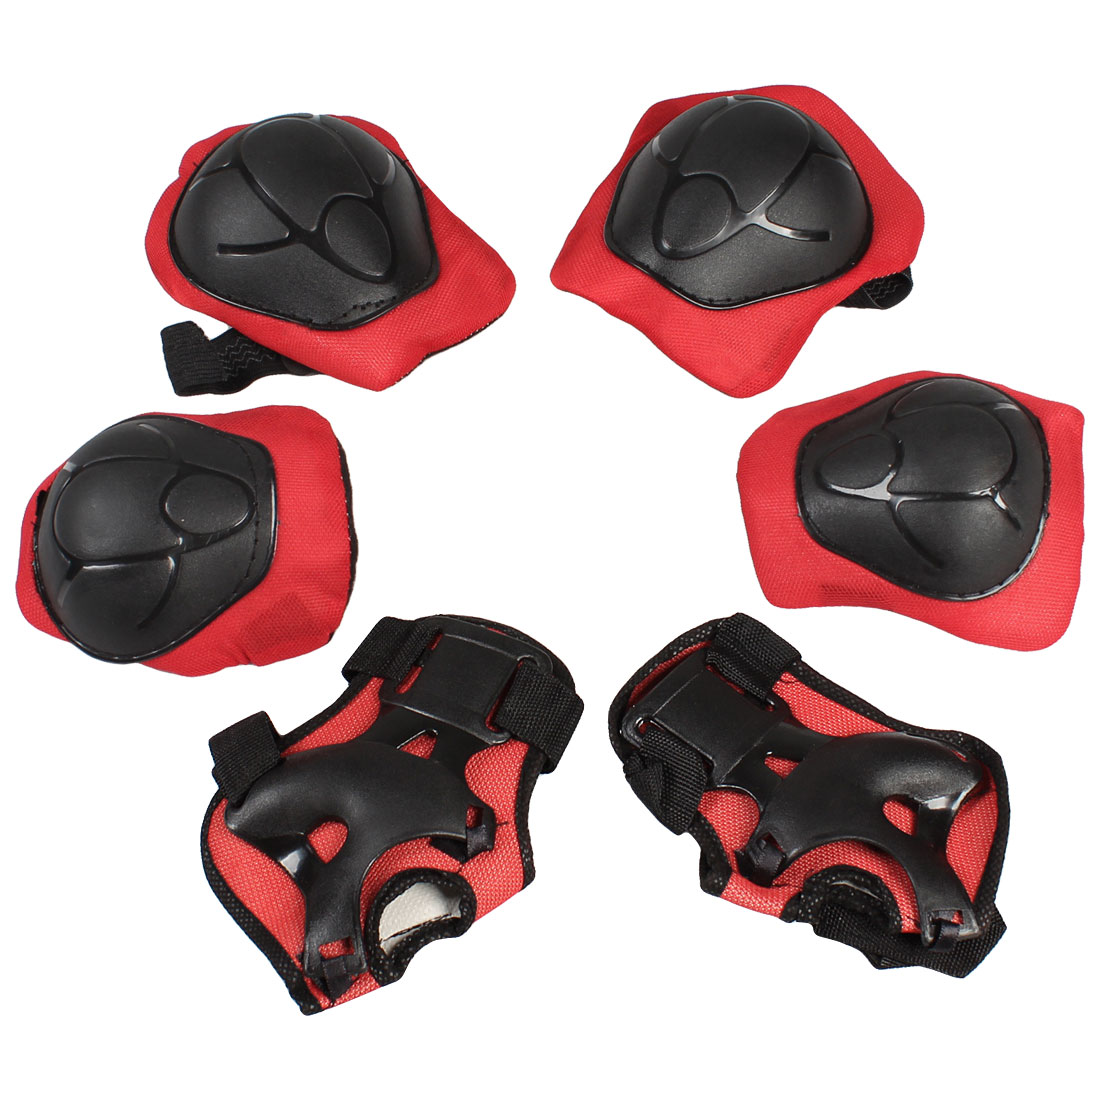 Roller Blading Skating Safety Protective Gear Combo Wrist Guard Elbow Knee Pads for Kids